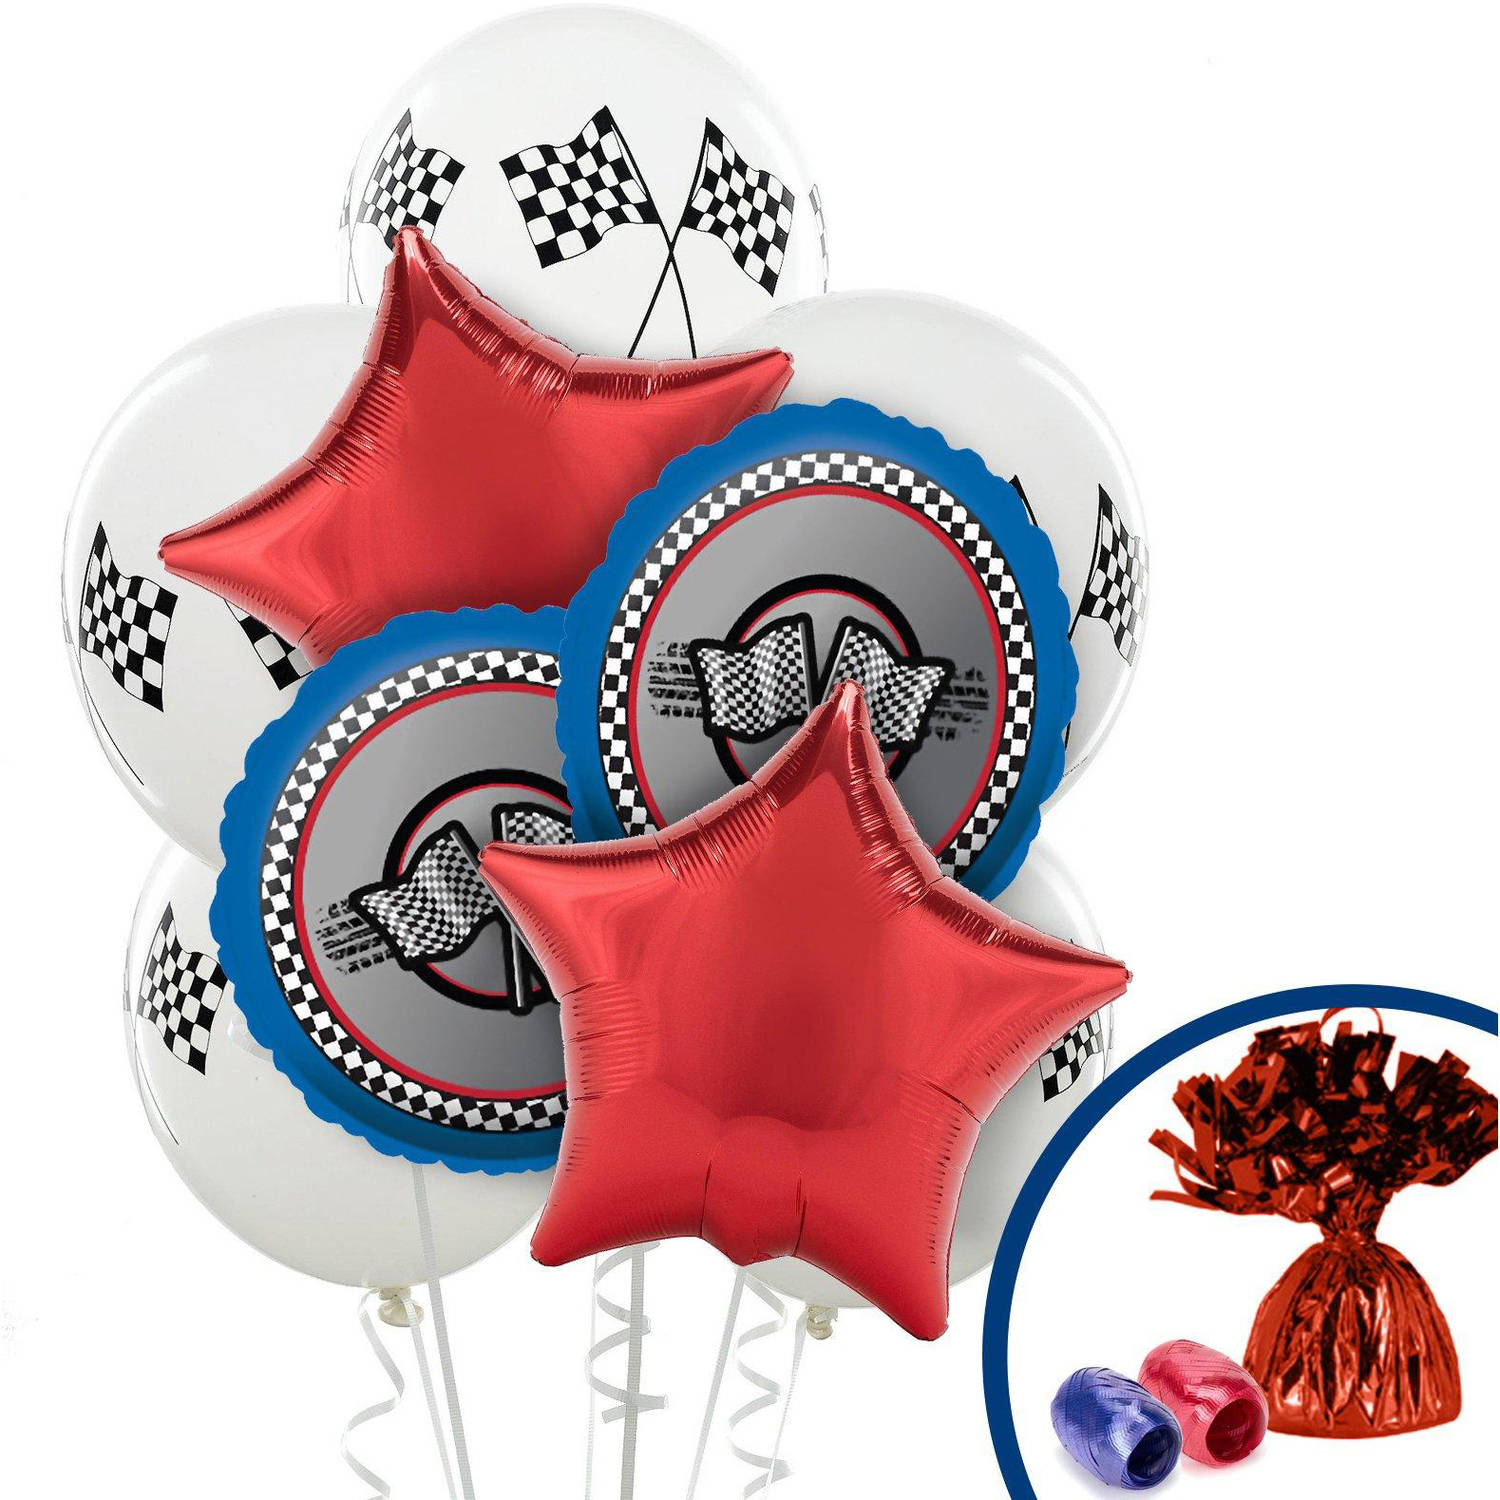 Racing Balloon Bouquet